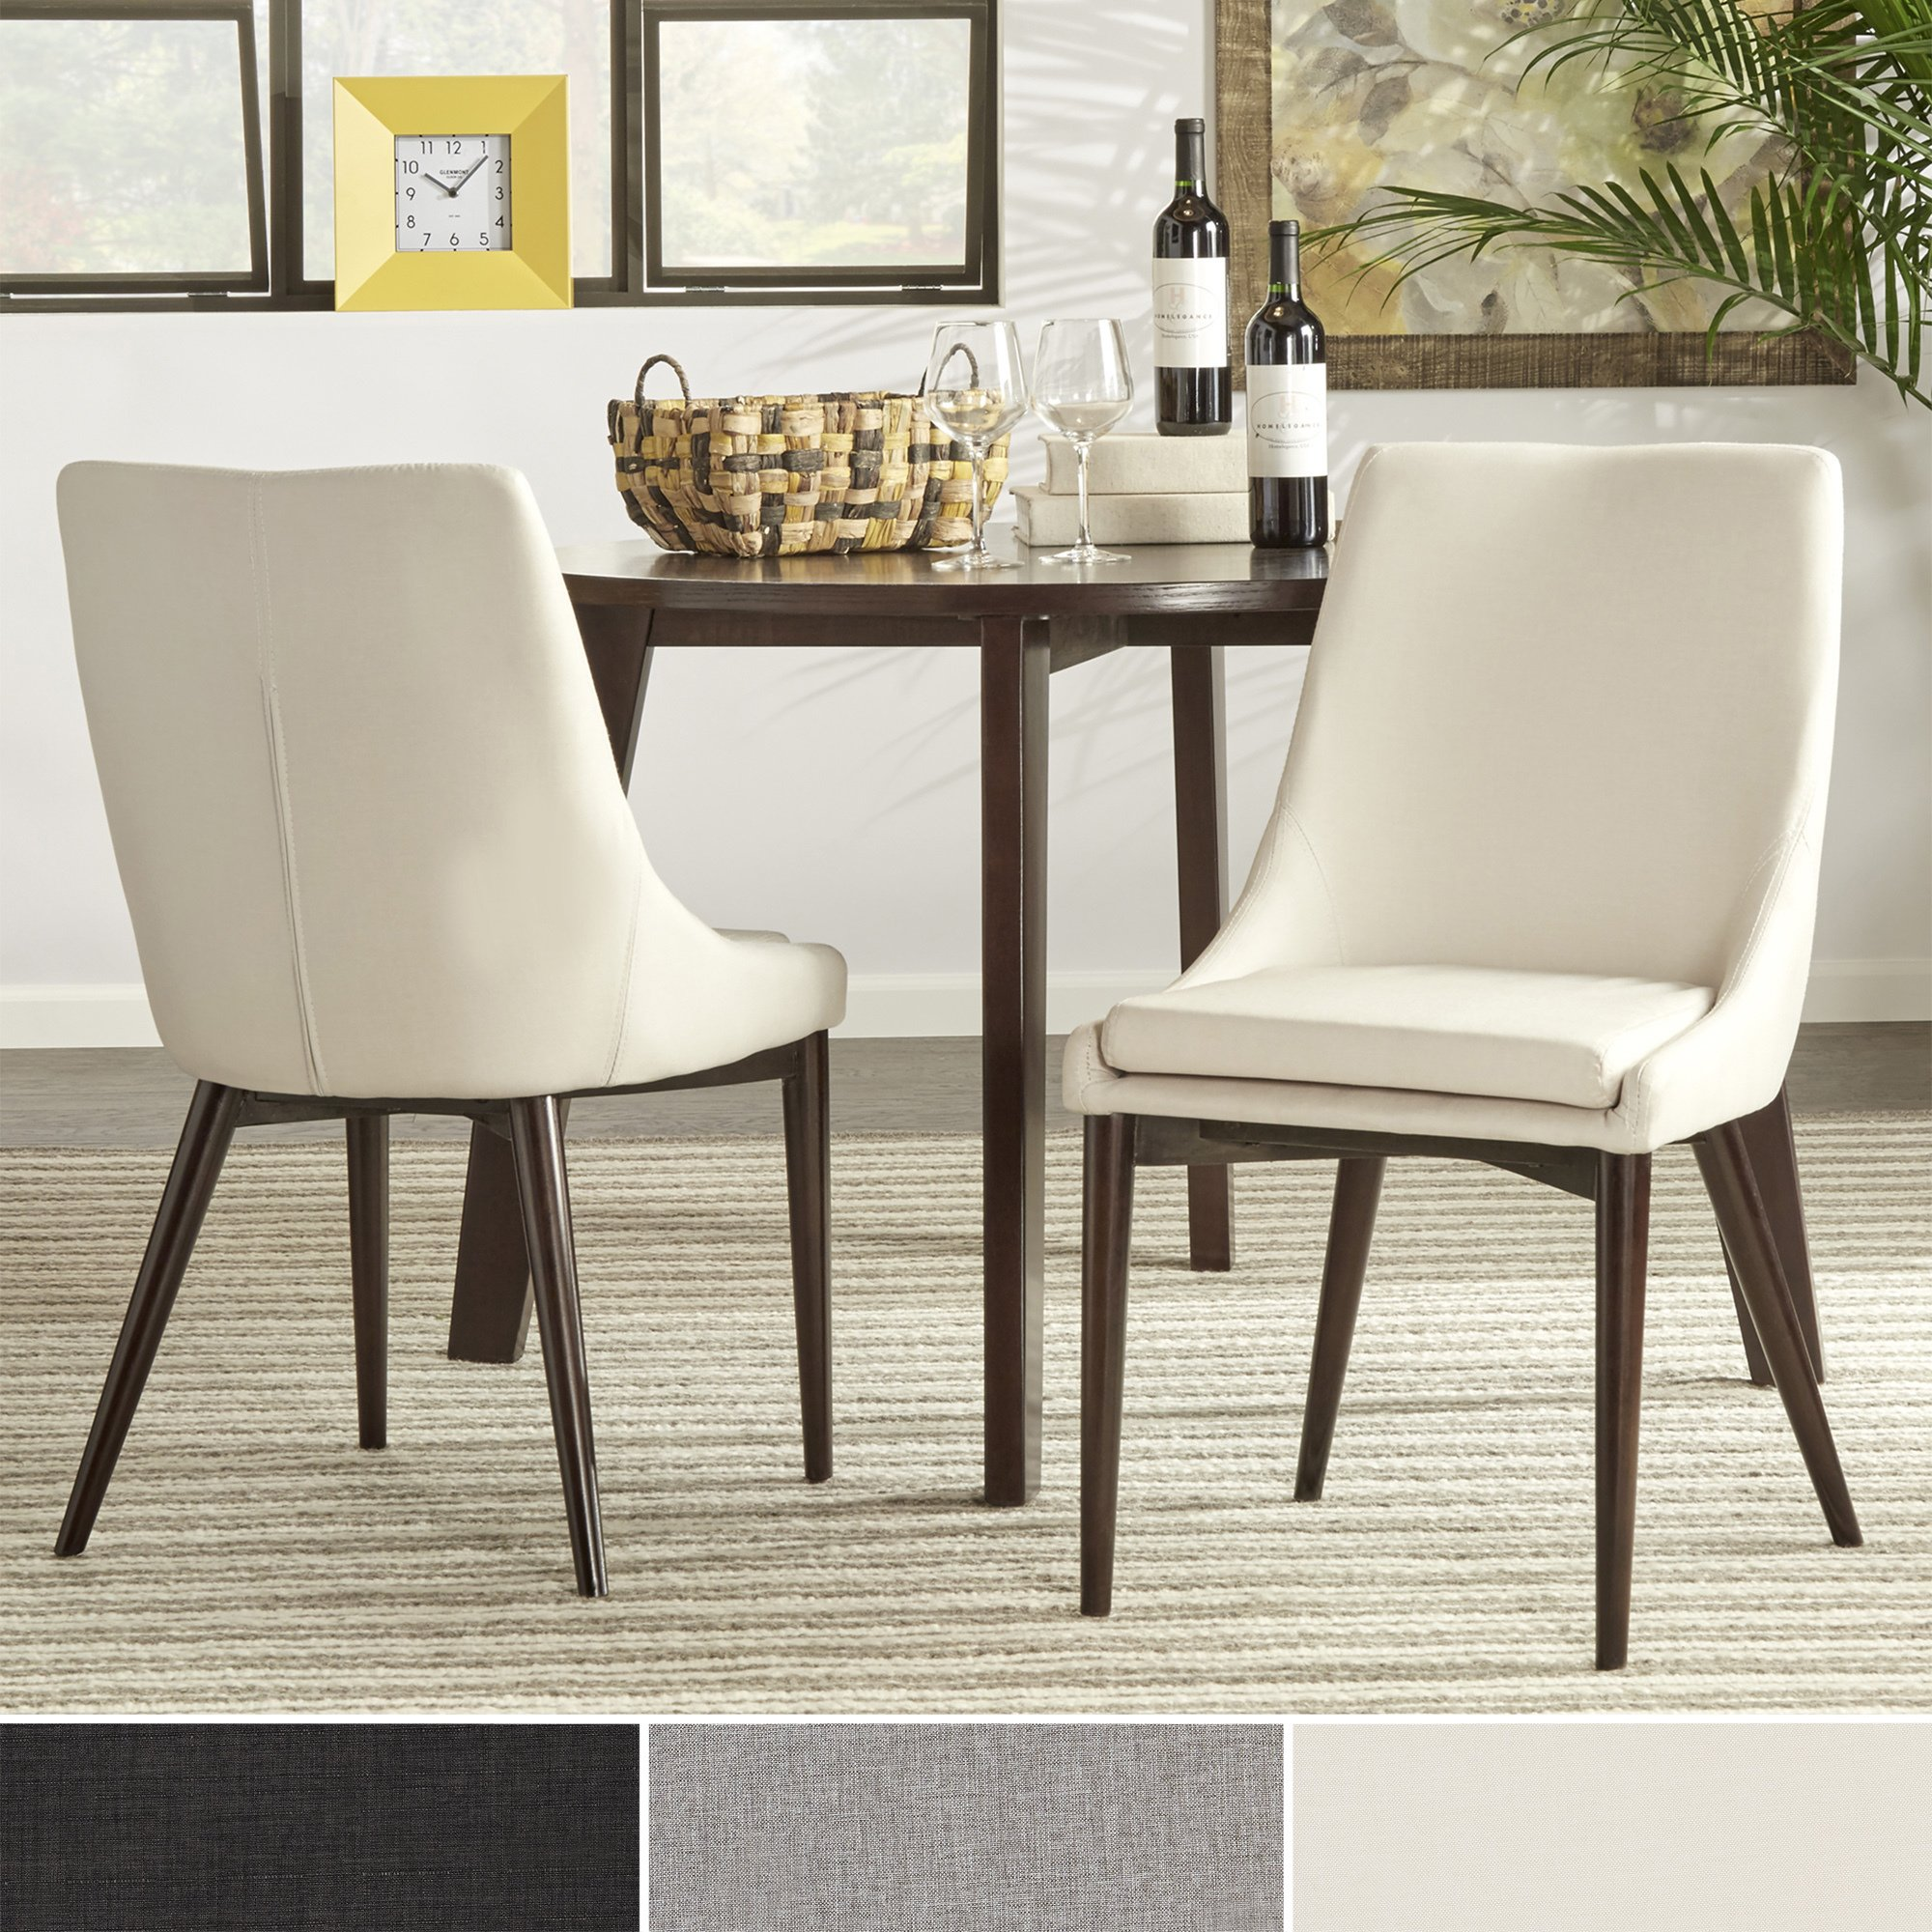 sasha mid century barrel back dining chairs set inspire modern round accent table free shipping today end tables dog grooming bath target bar stools large outdoor cover mission